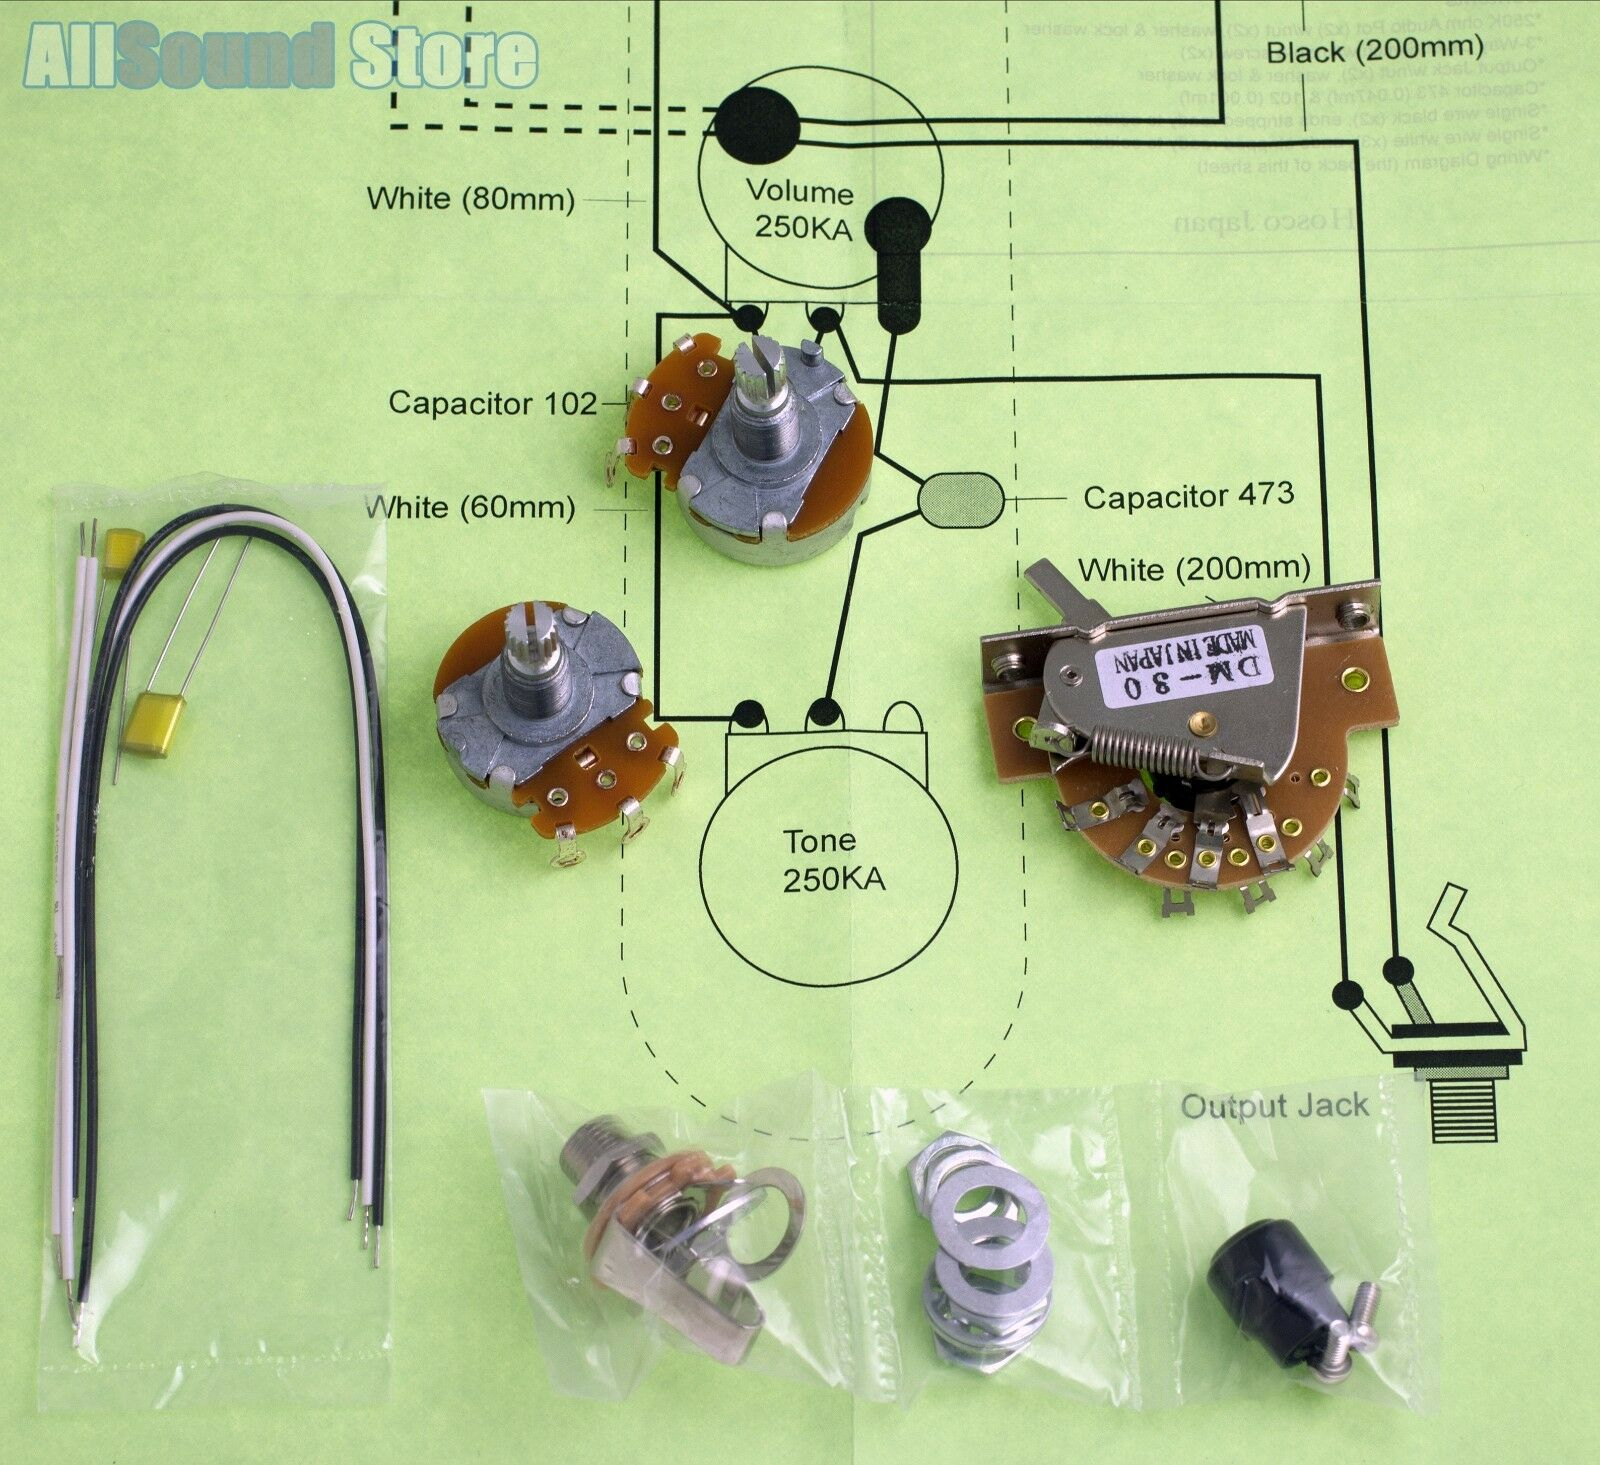 Wiring Kit for Import Fender Telecaster Tele COMPLETE telecaster kit wiring diagram guitars music production home  at creativeand.co